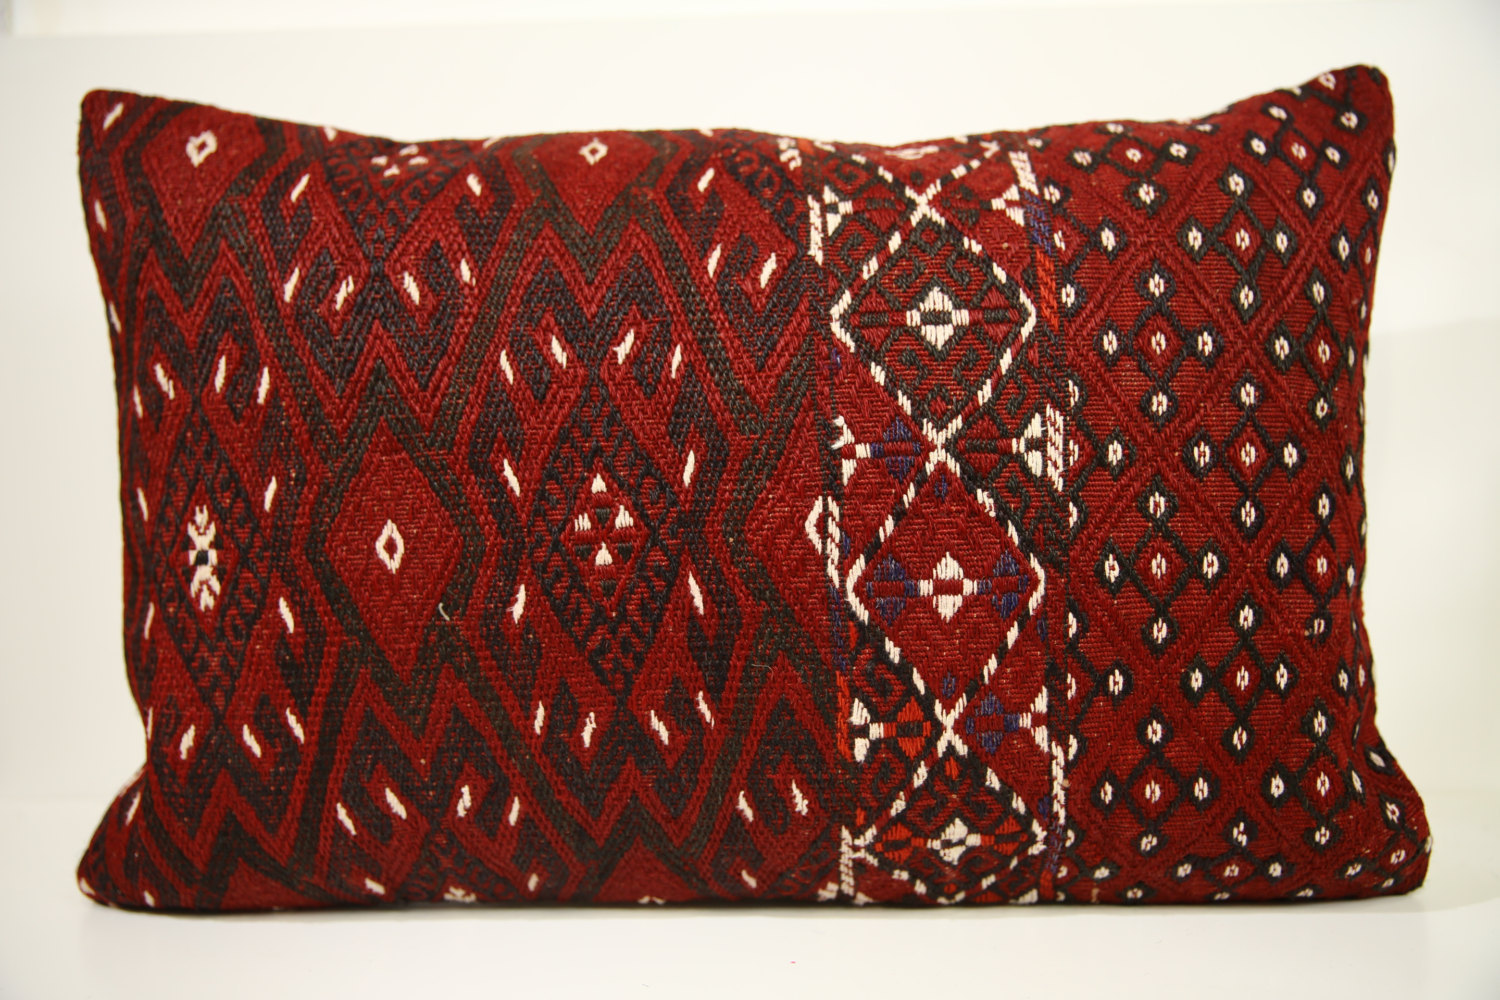 Decorative Pillows Kilim : Kilim Pillows 24x16 Lumbar pillows 1468 Turkish pillows , throw pillows - Pillows